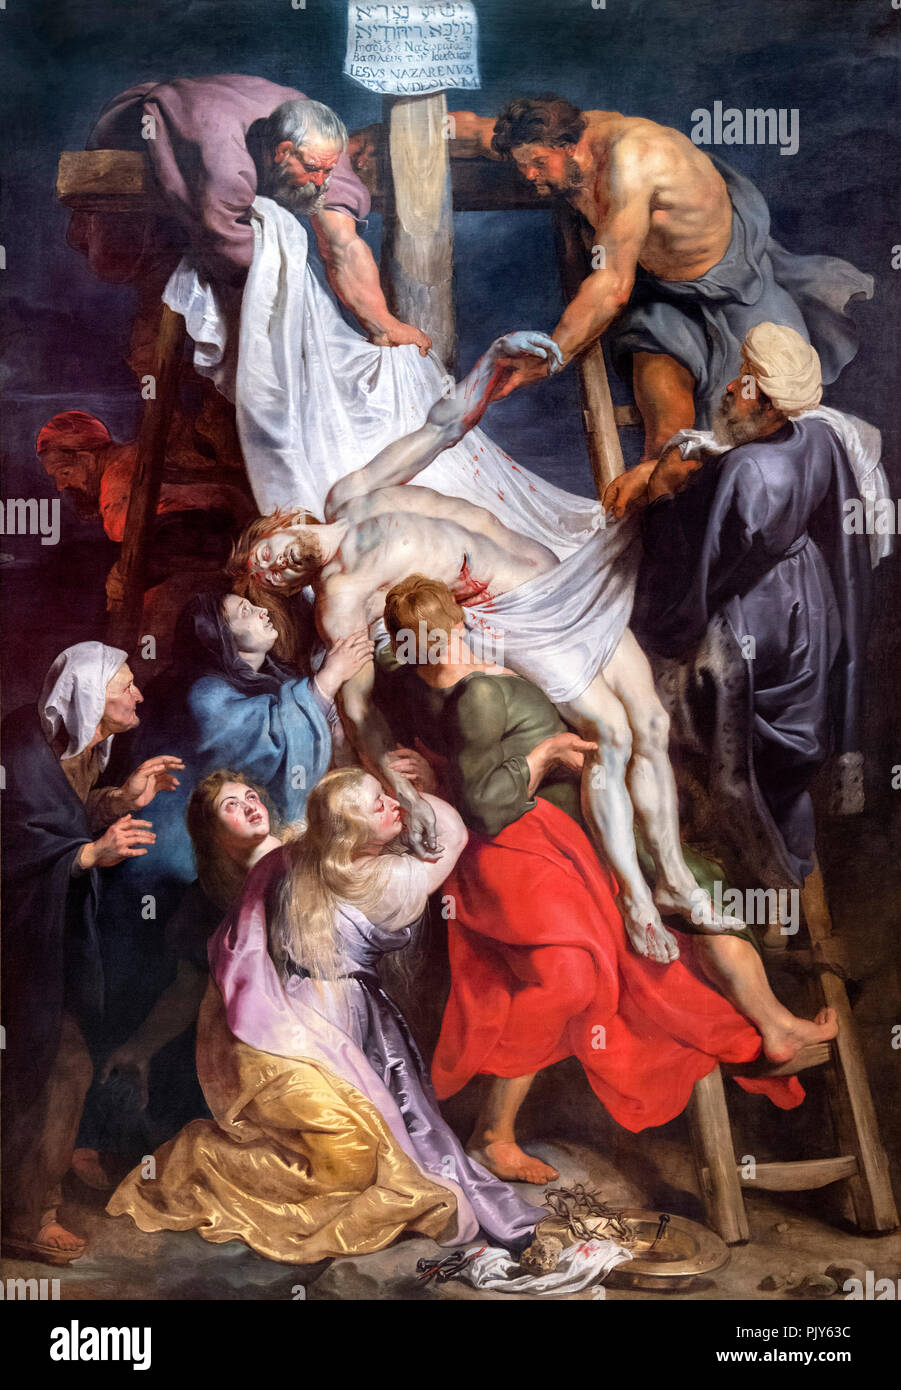 Descent from the Cross by Sir Peter Paul Rubens (c.1577-1640), oil on canvas, 1616/17 - Stock Image